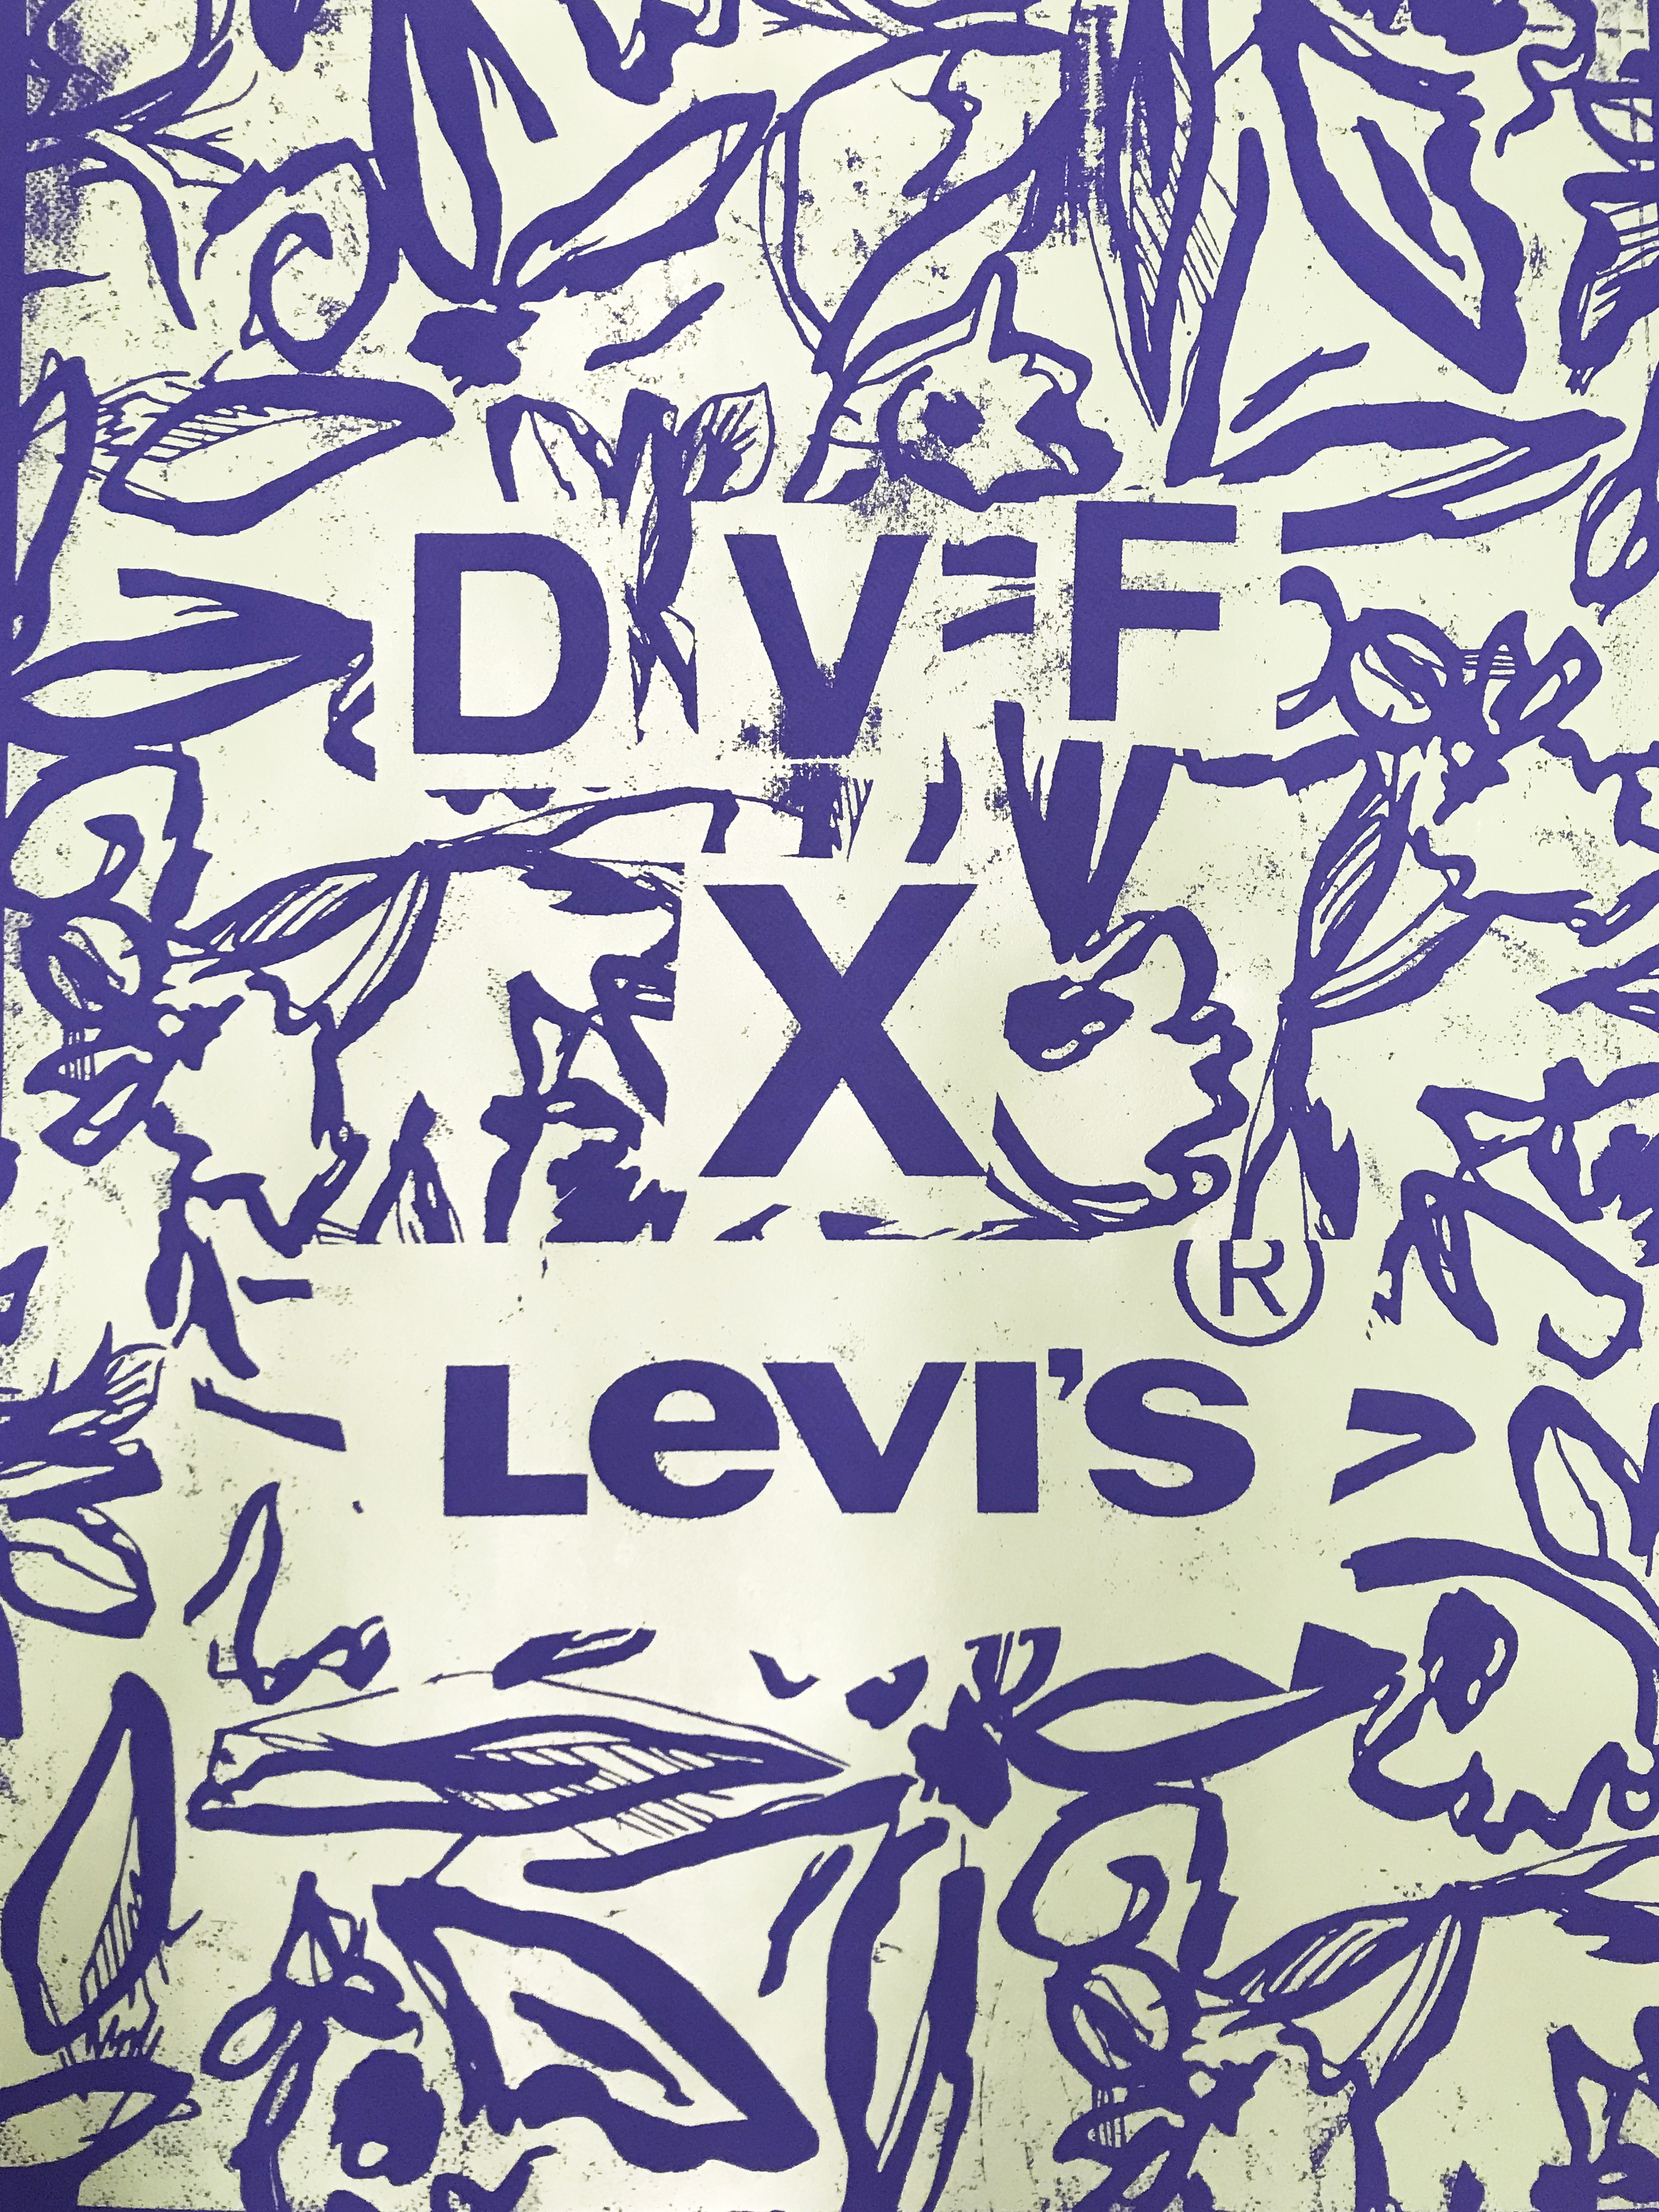 Screen painting of DVF x Levis.